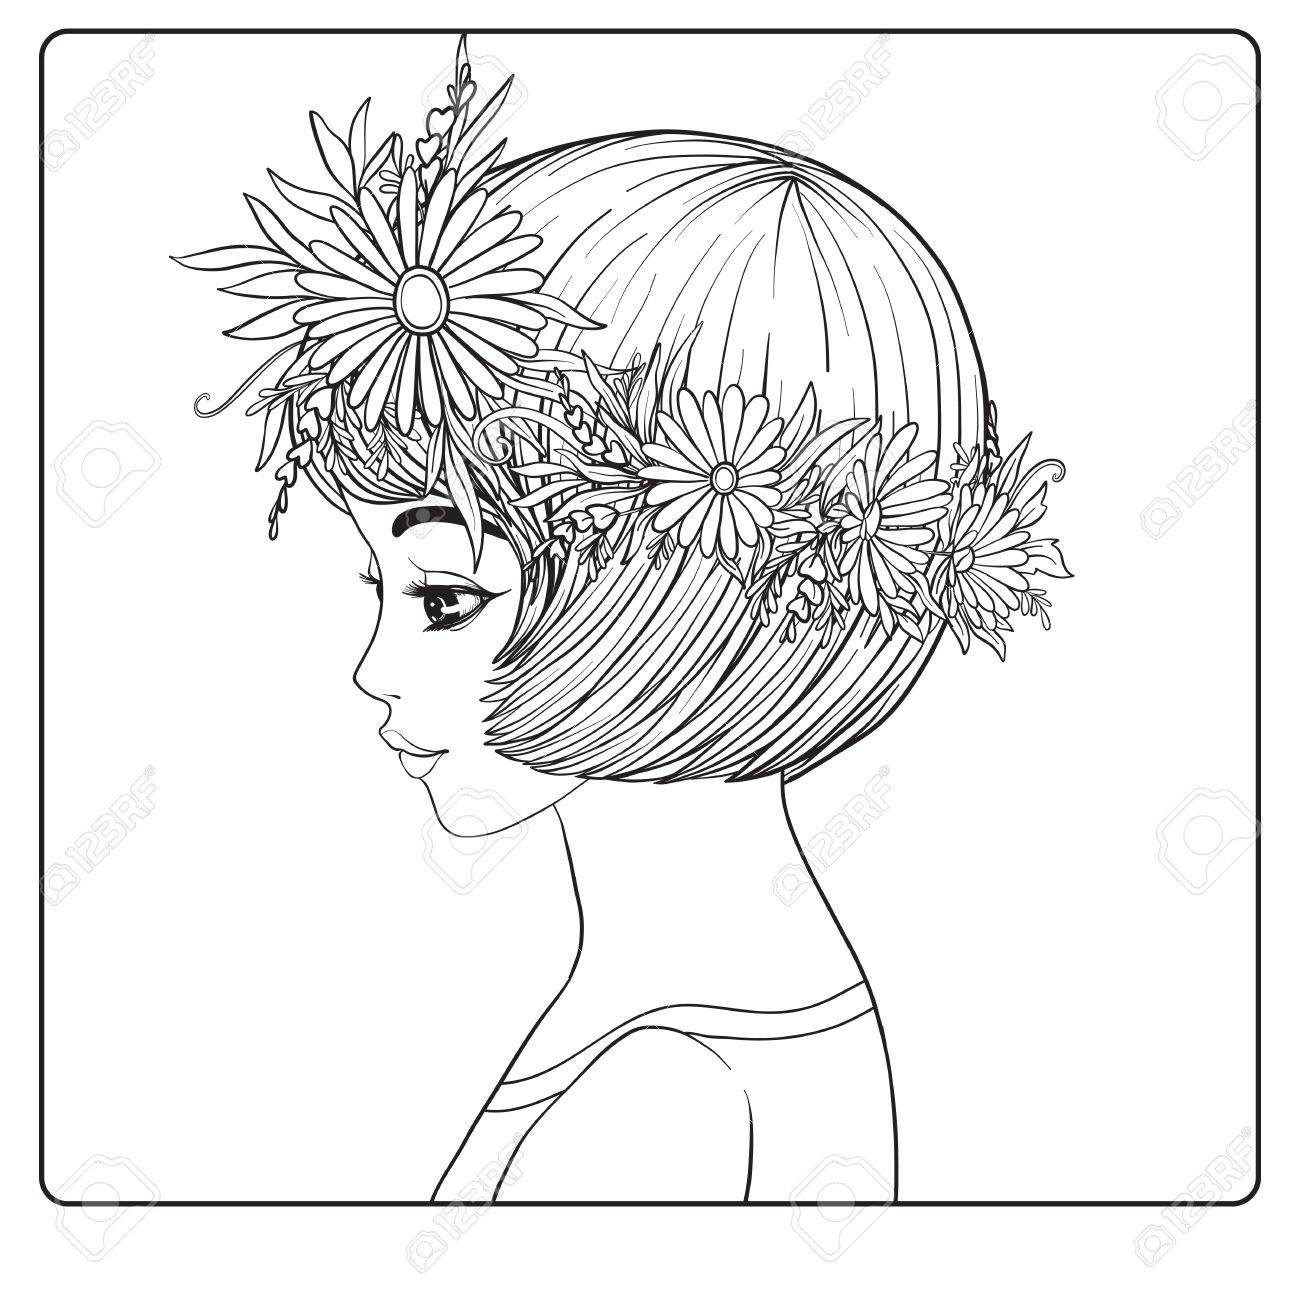 1300x1300 A Young Beautiful Girl With A Wreath Of Flowers On Her Head